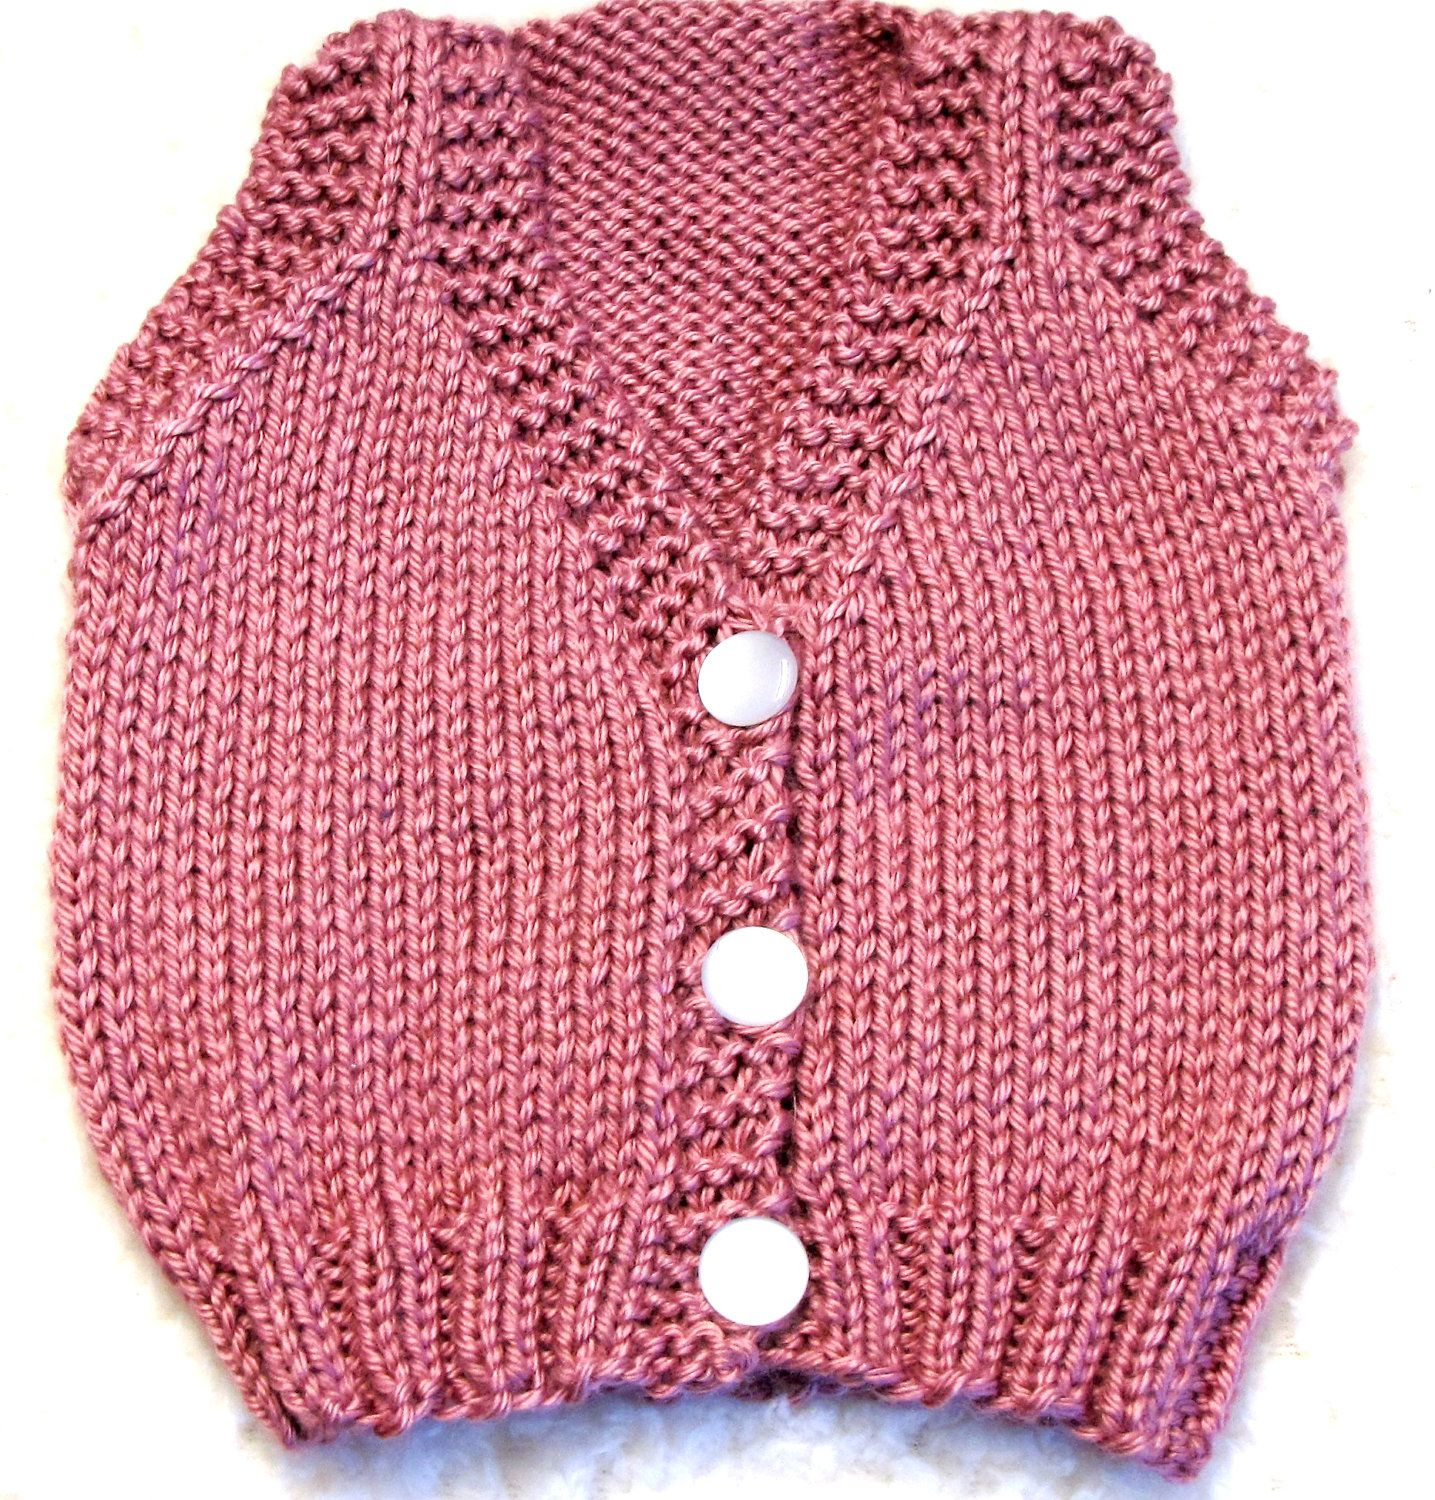 Baby vest knitting pattern small pdf tejidos nios baby vest knitting pattern small pdf bankloansurffo Images